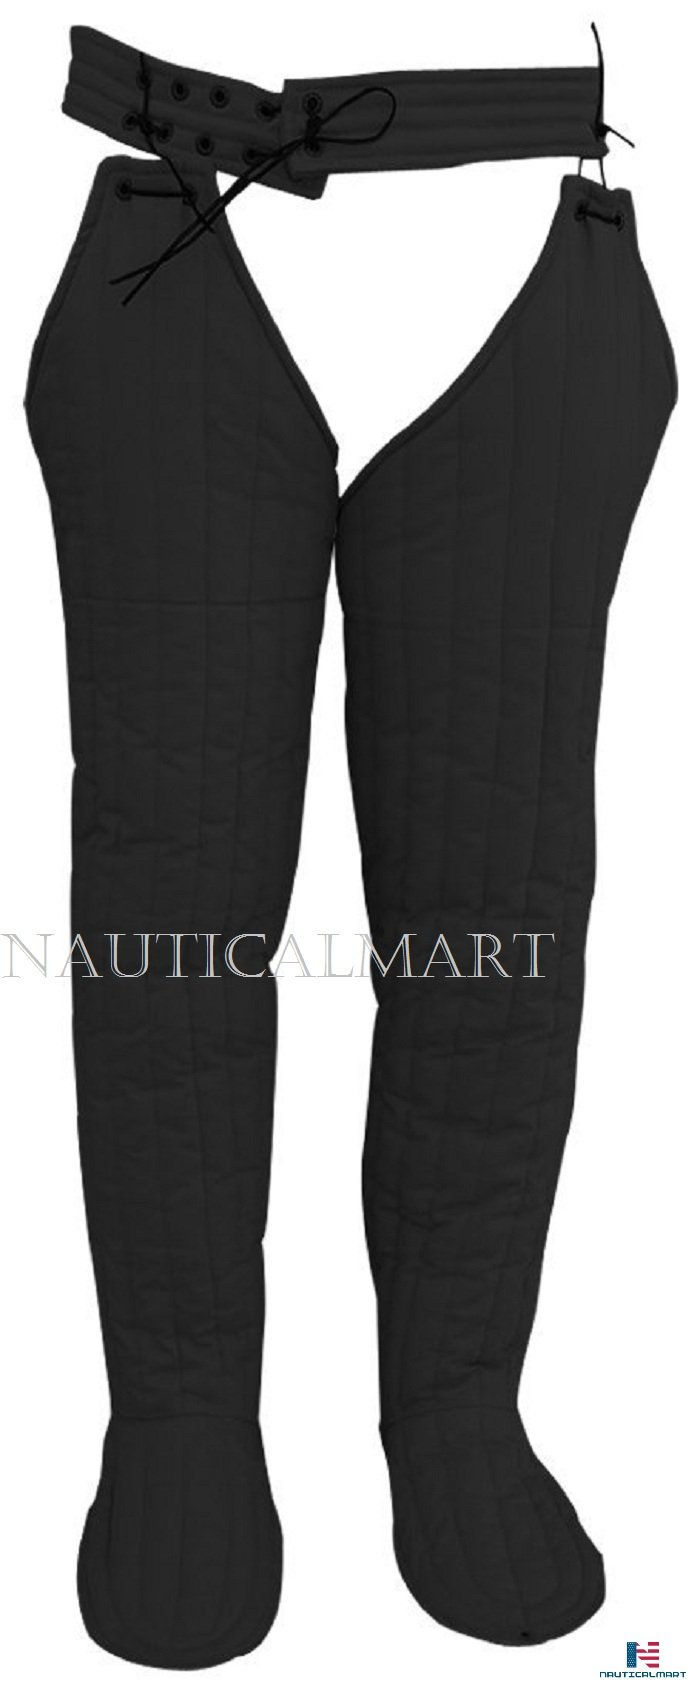 NAUTICALMART Padded Arming Leg Protection Cotton Padded Legging with Shoe Cover